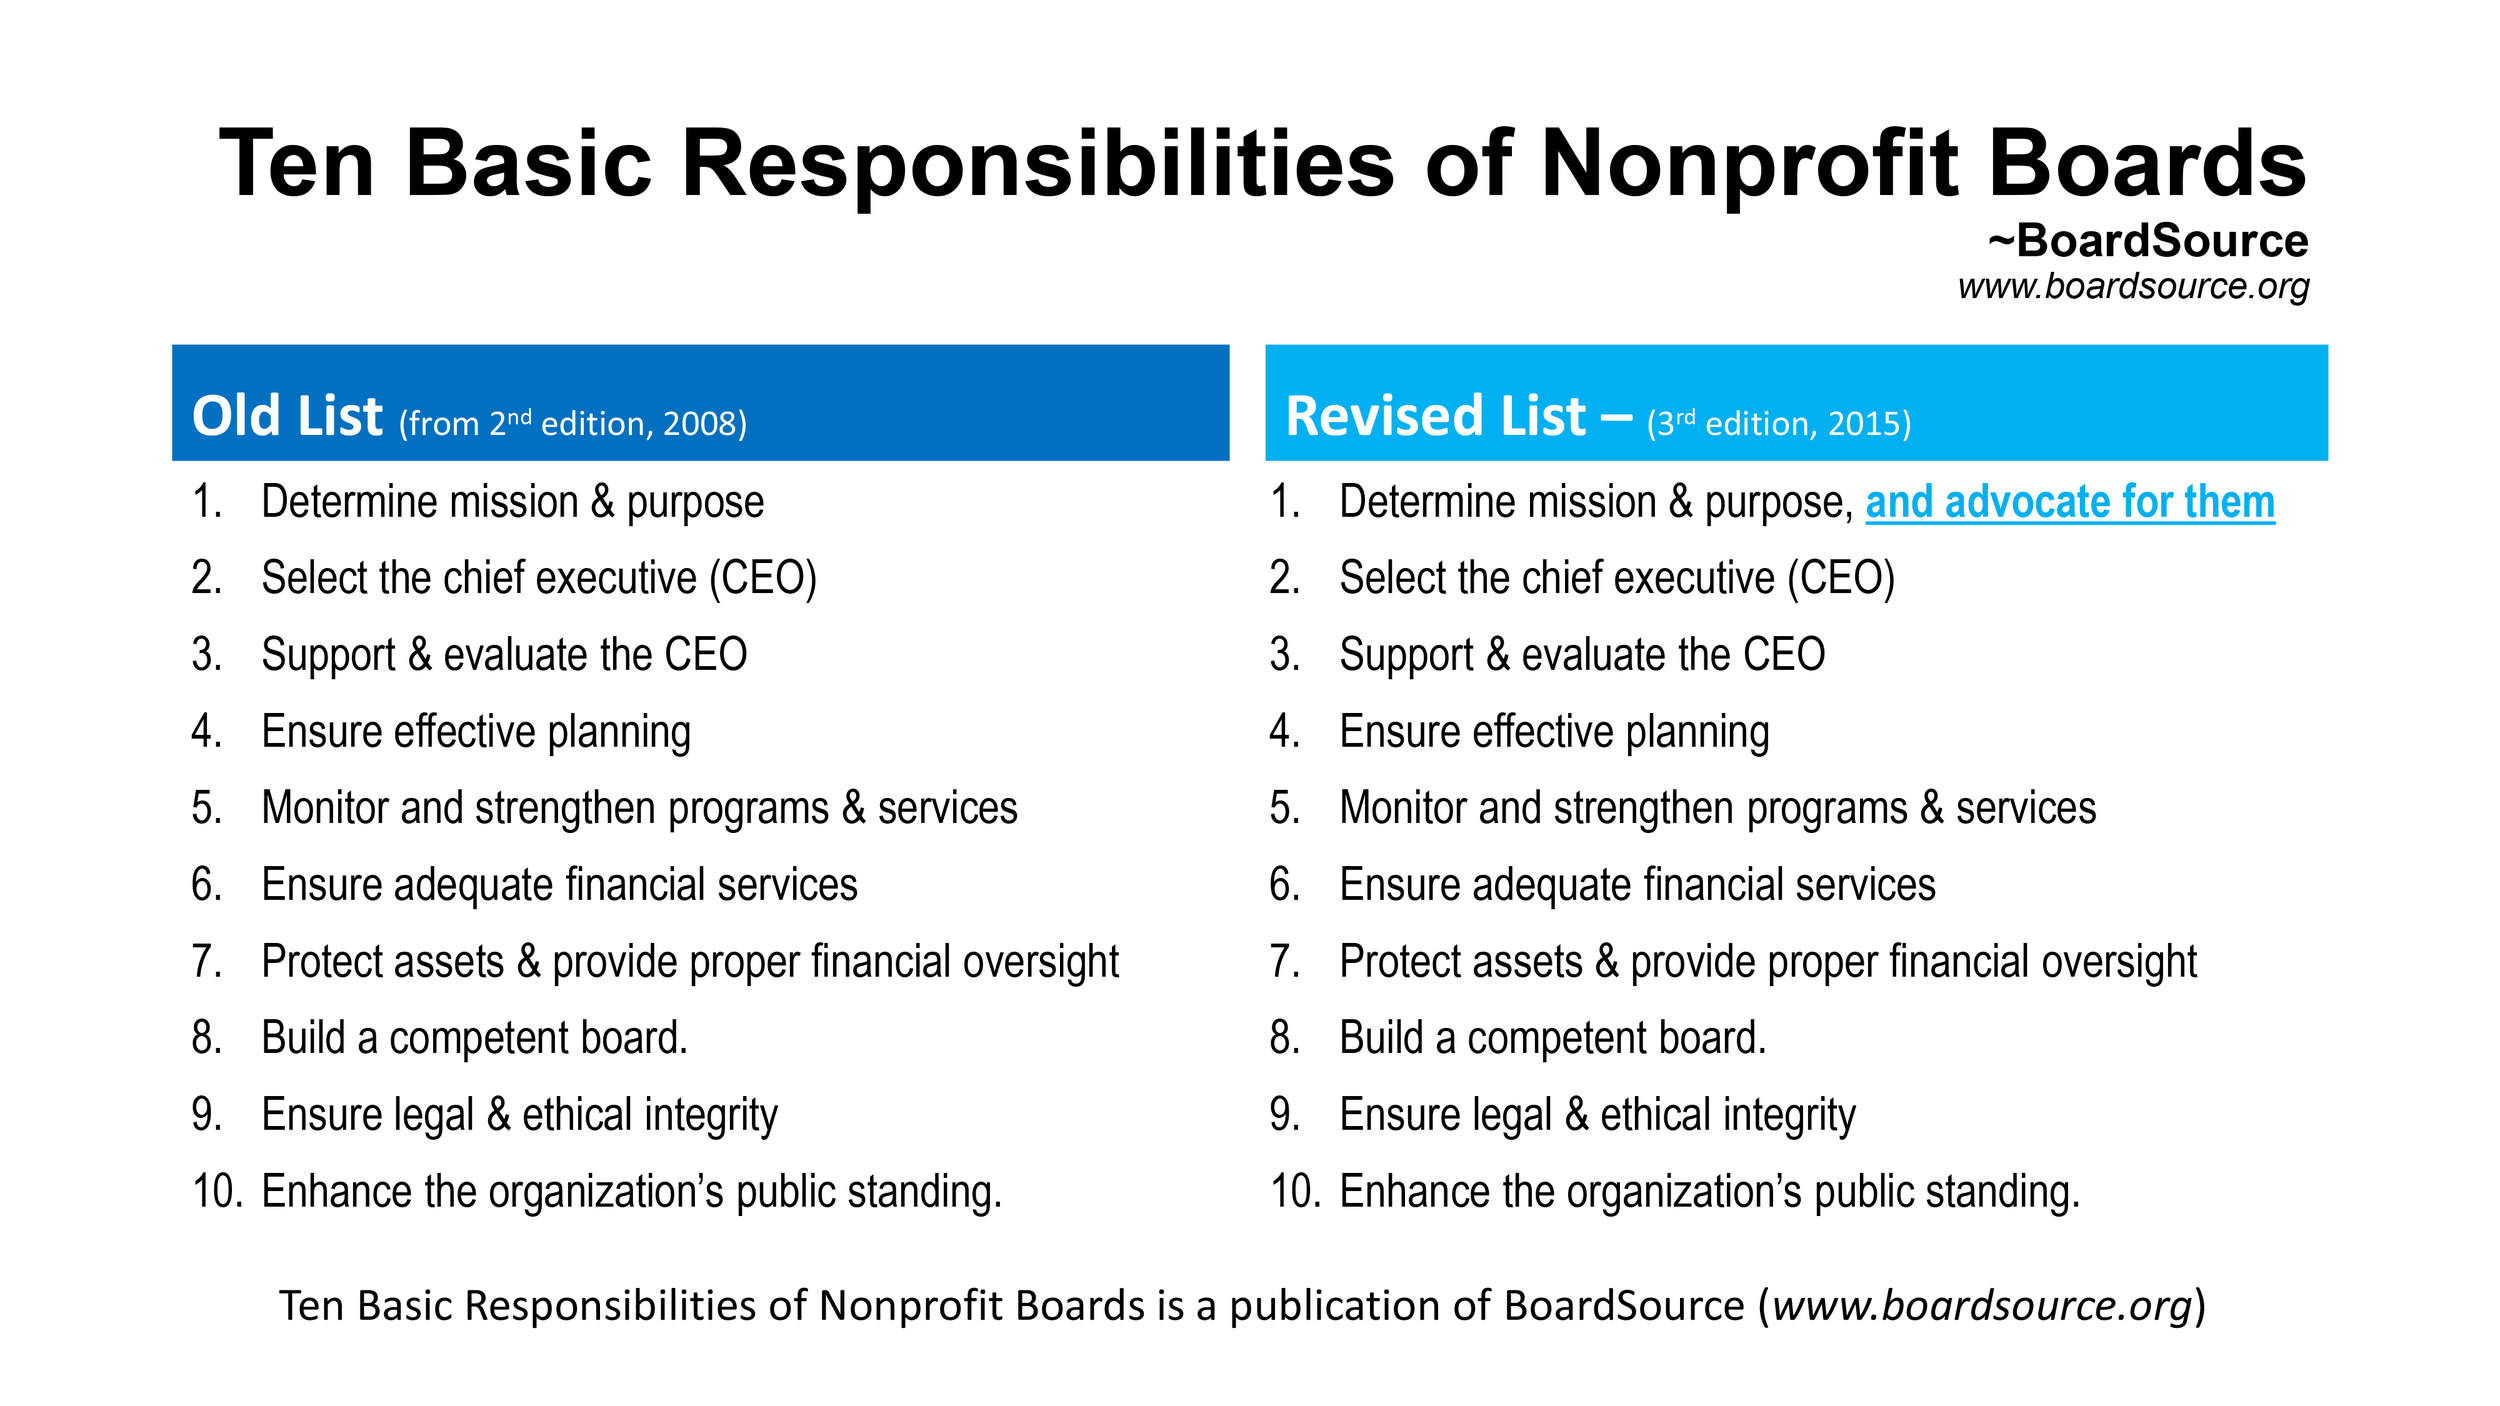 This list contains a side-by-side comparison of the old and new lists published by BoardSource of the Ten Basic Responsibilities of Boards (the 2015 list recently released and updated and the earlier list, in effect for the last several years. The new list rewords some earlier responsibilities to highlight the importance of Board members advocating for their agencies.